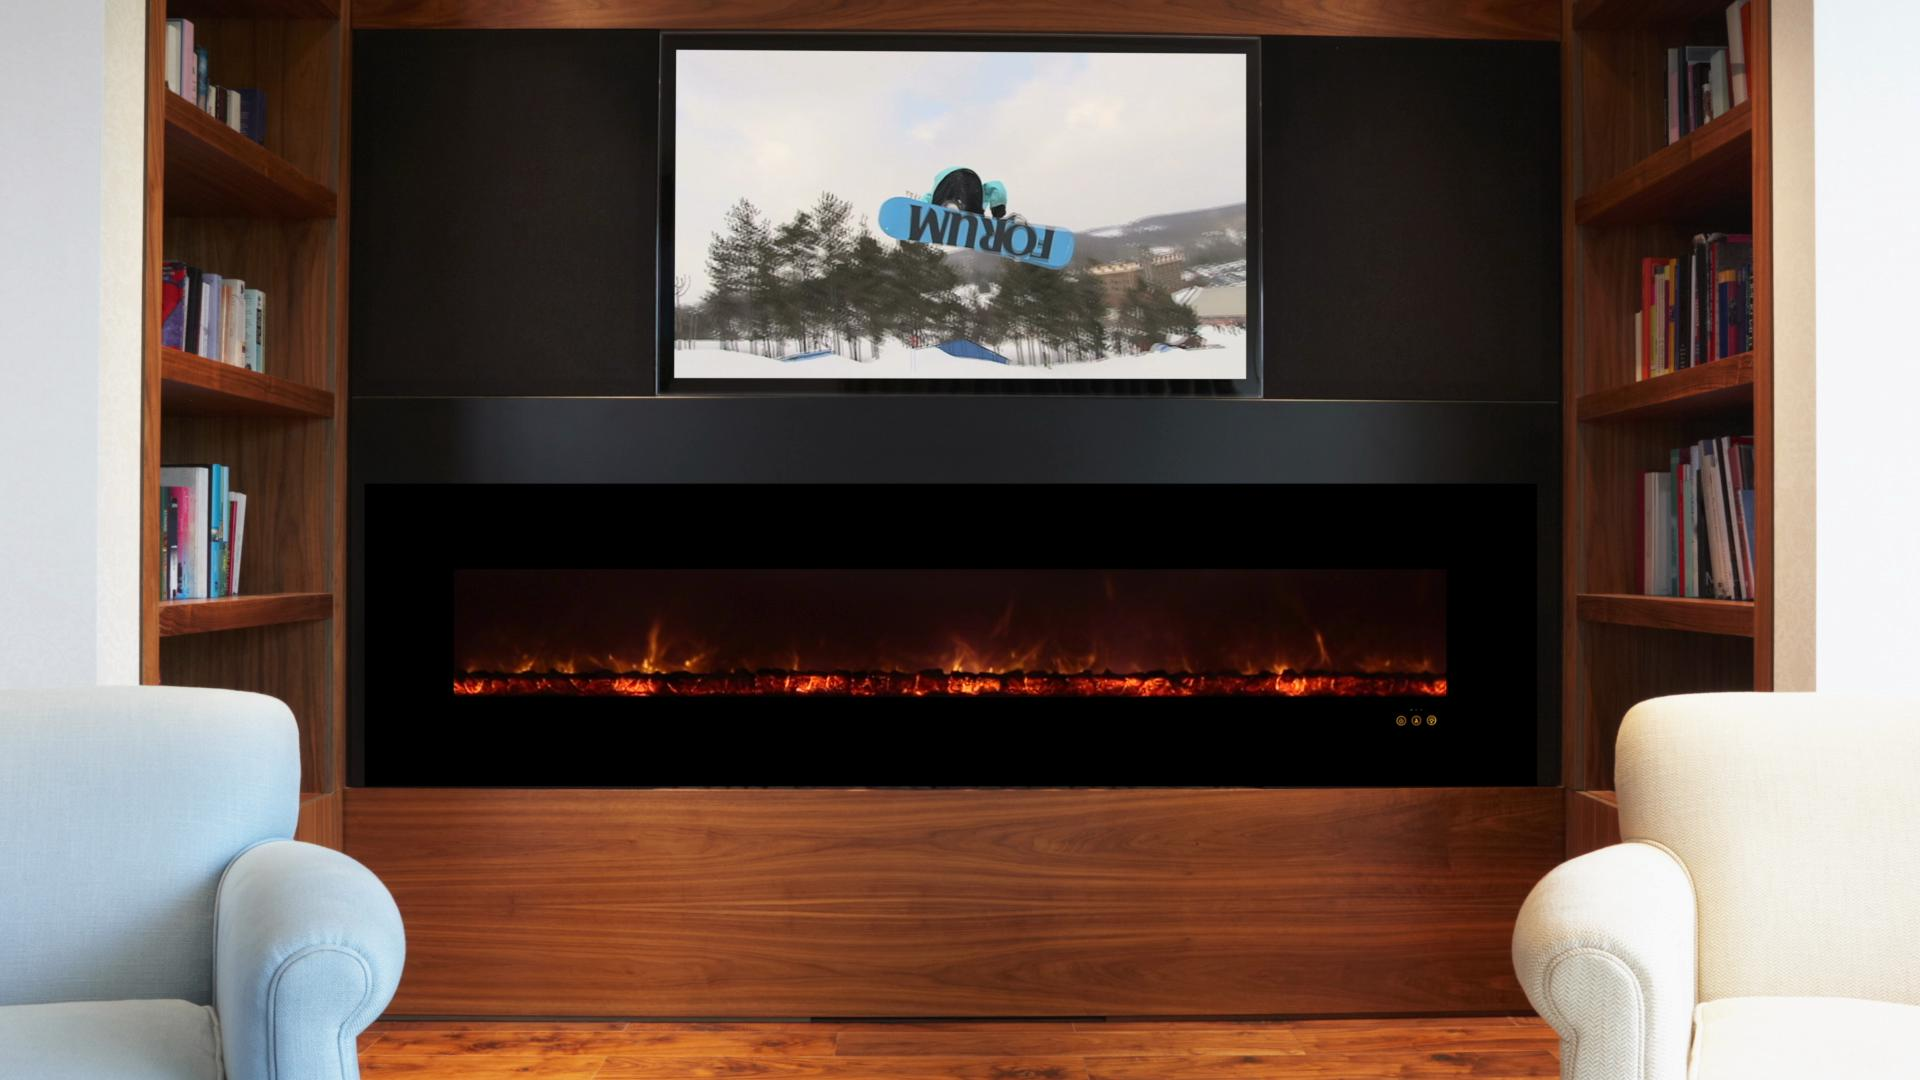 of recommended ventless gas fireplace inserts image book talking water fireplaces popular vapor design